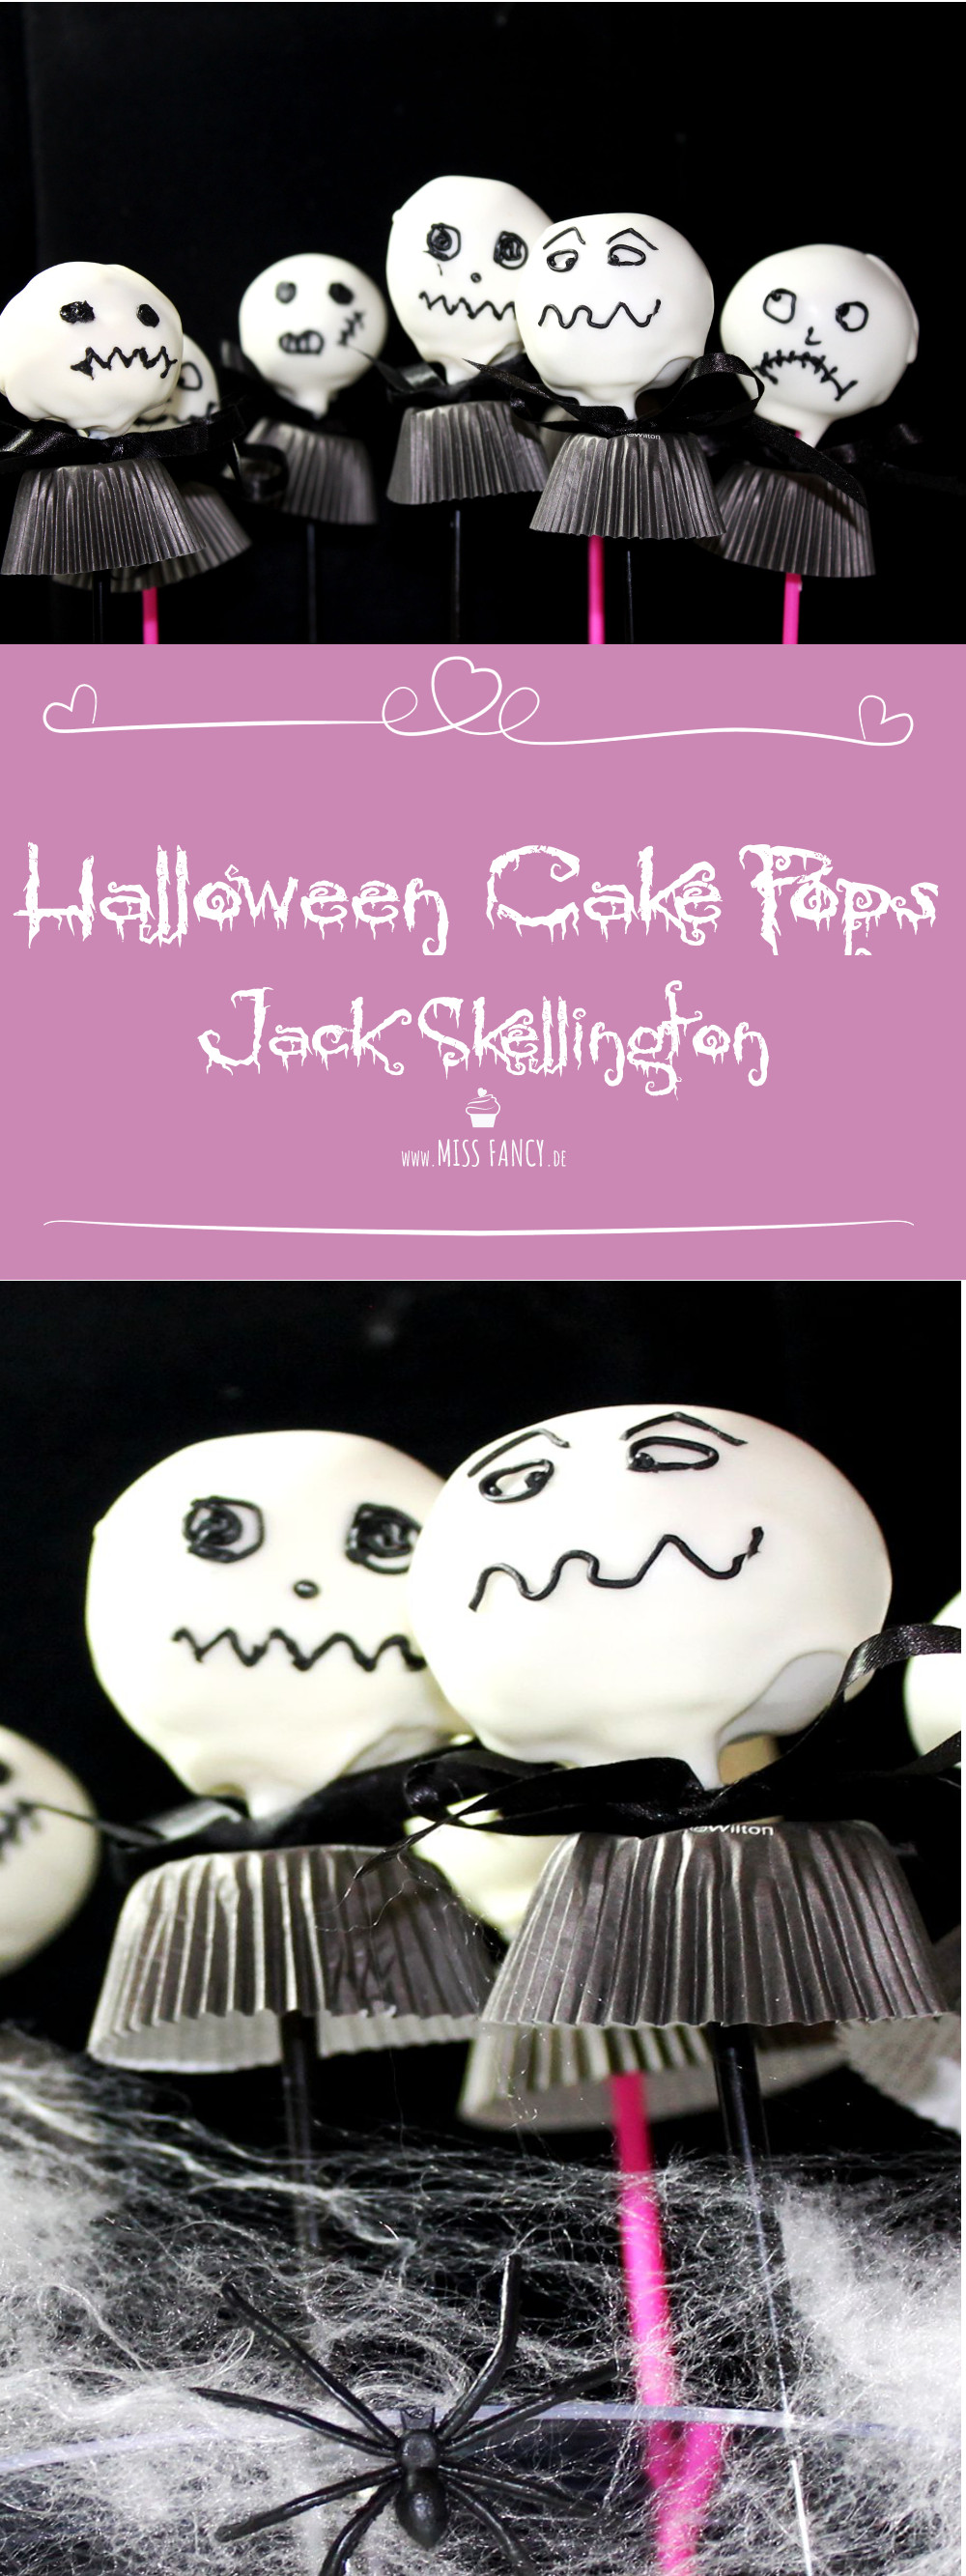 Rezept Halloween Cake Pops Jack-Skellington Missfancy Foodblog